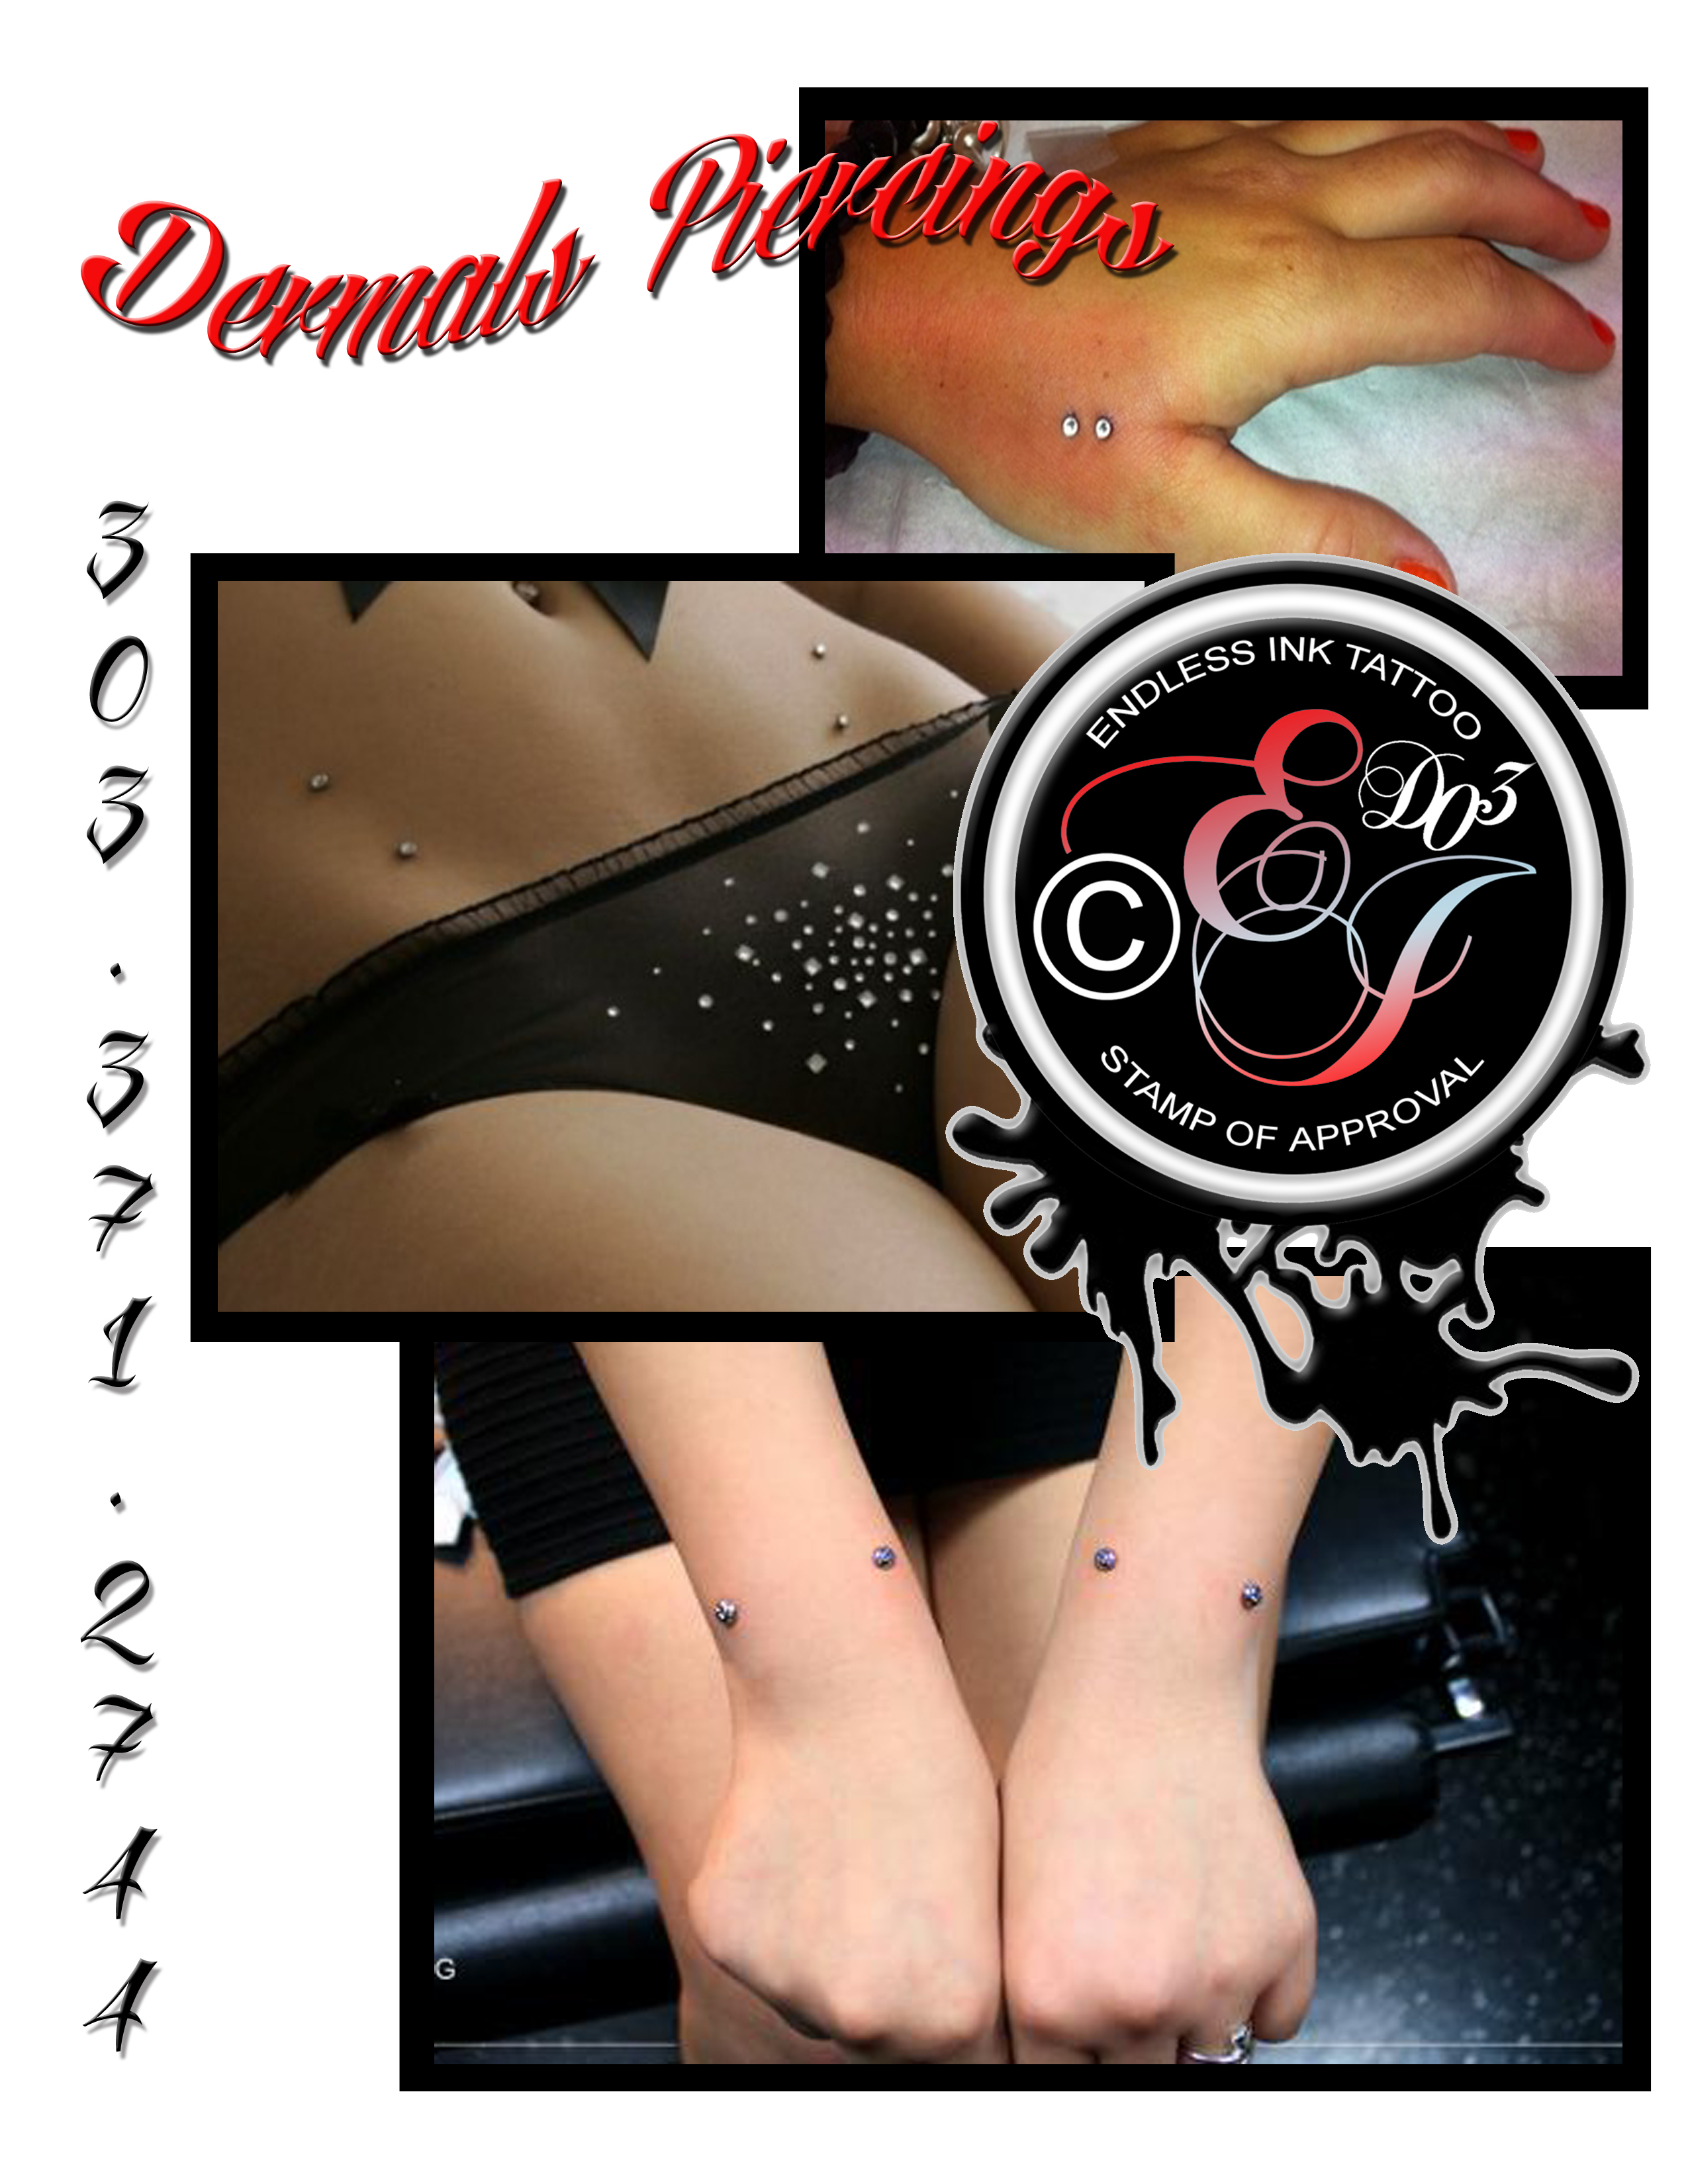 #Dermals #Best #Sexy #Denver #Endless #Piercing #Body #Piercings #Colorado #Hot